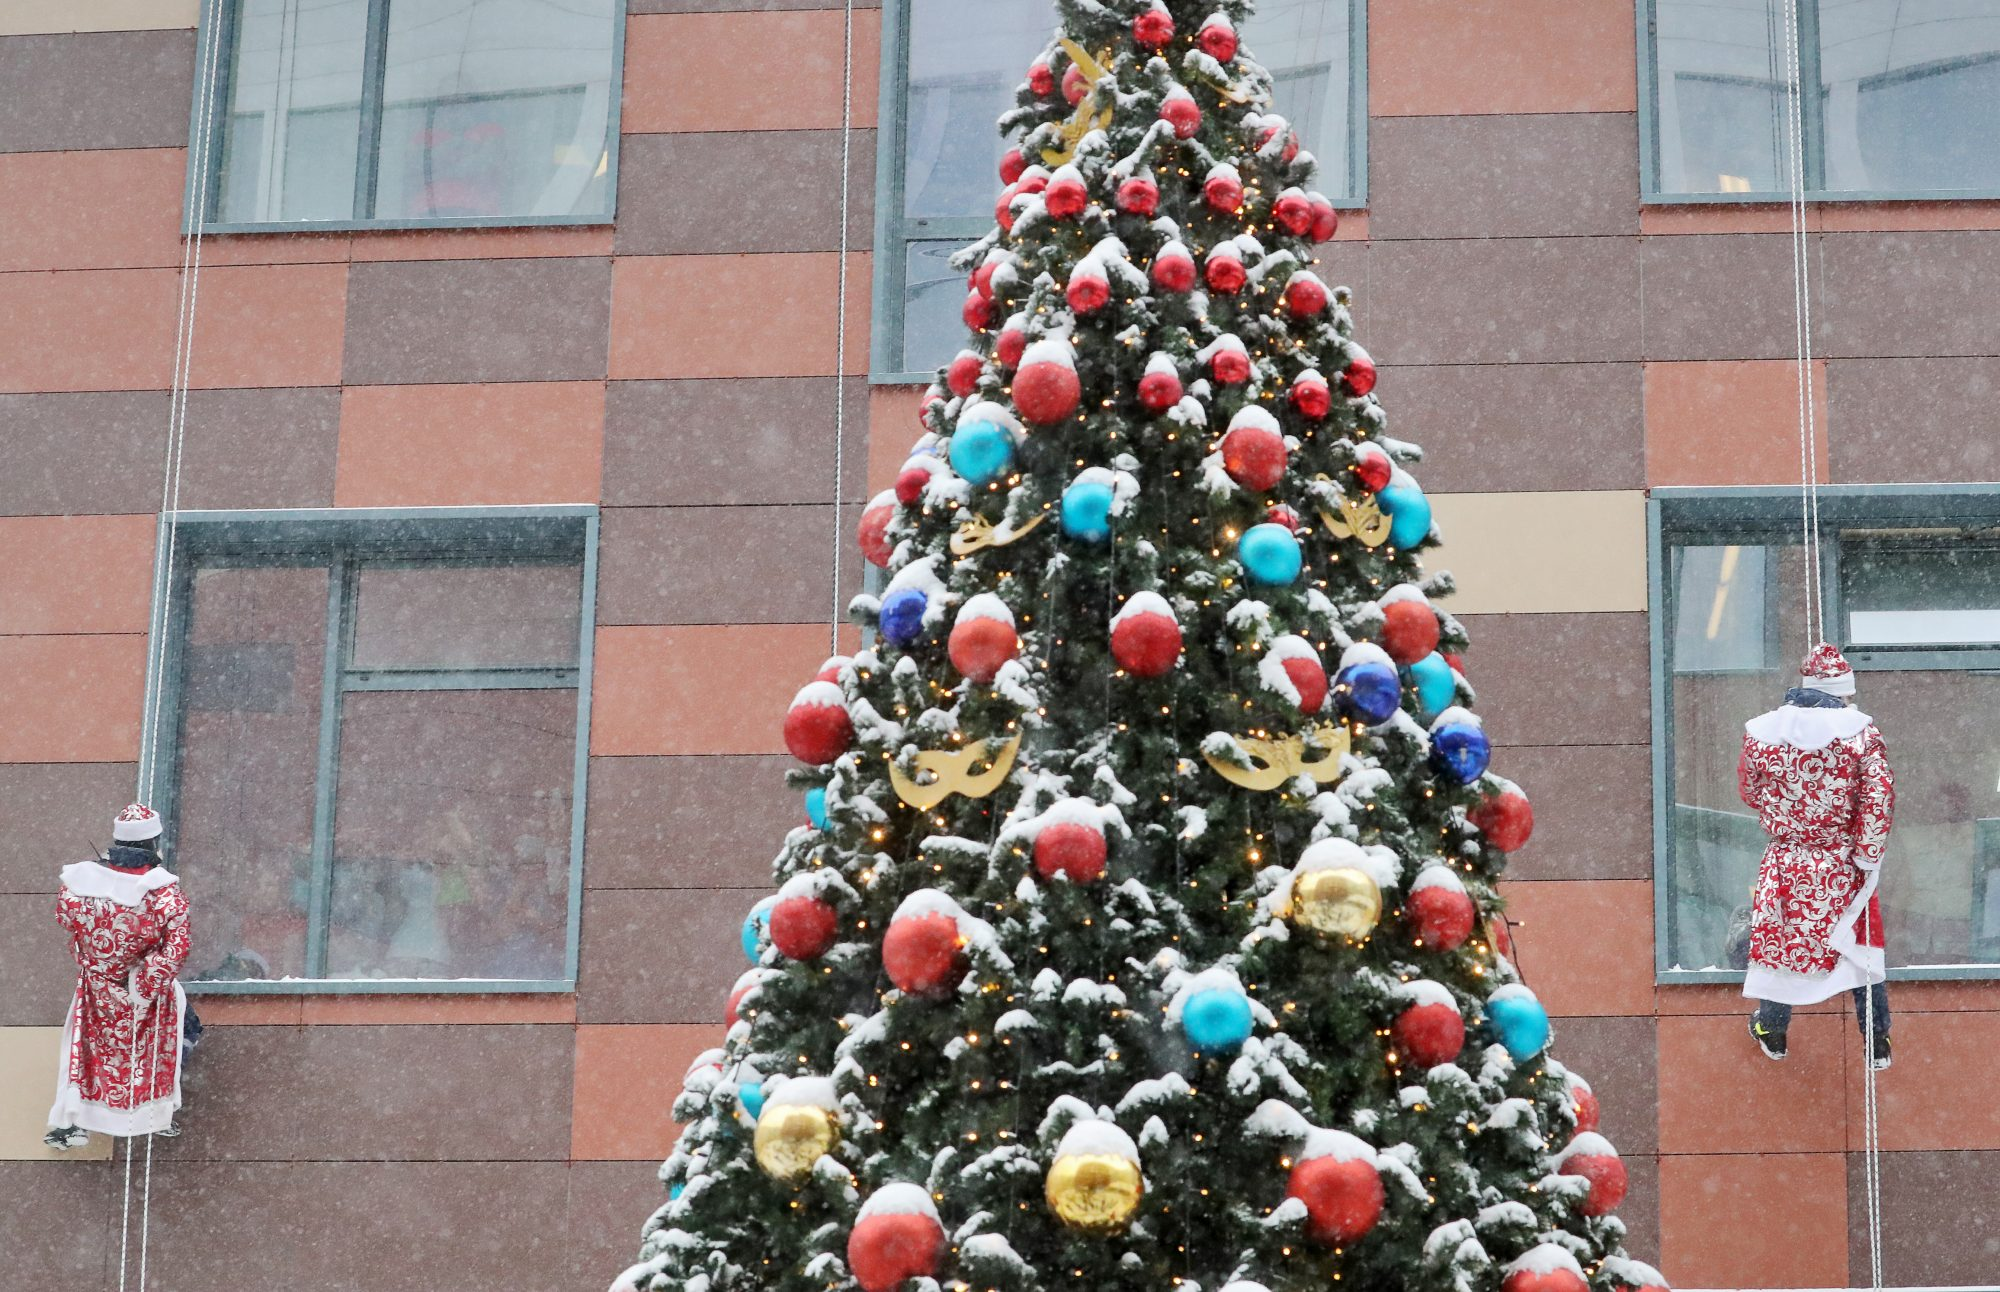 Christmas tree in front of hospital building windows